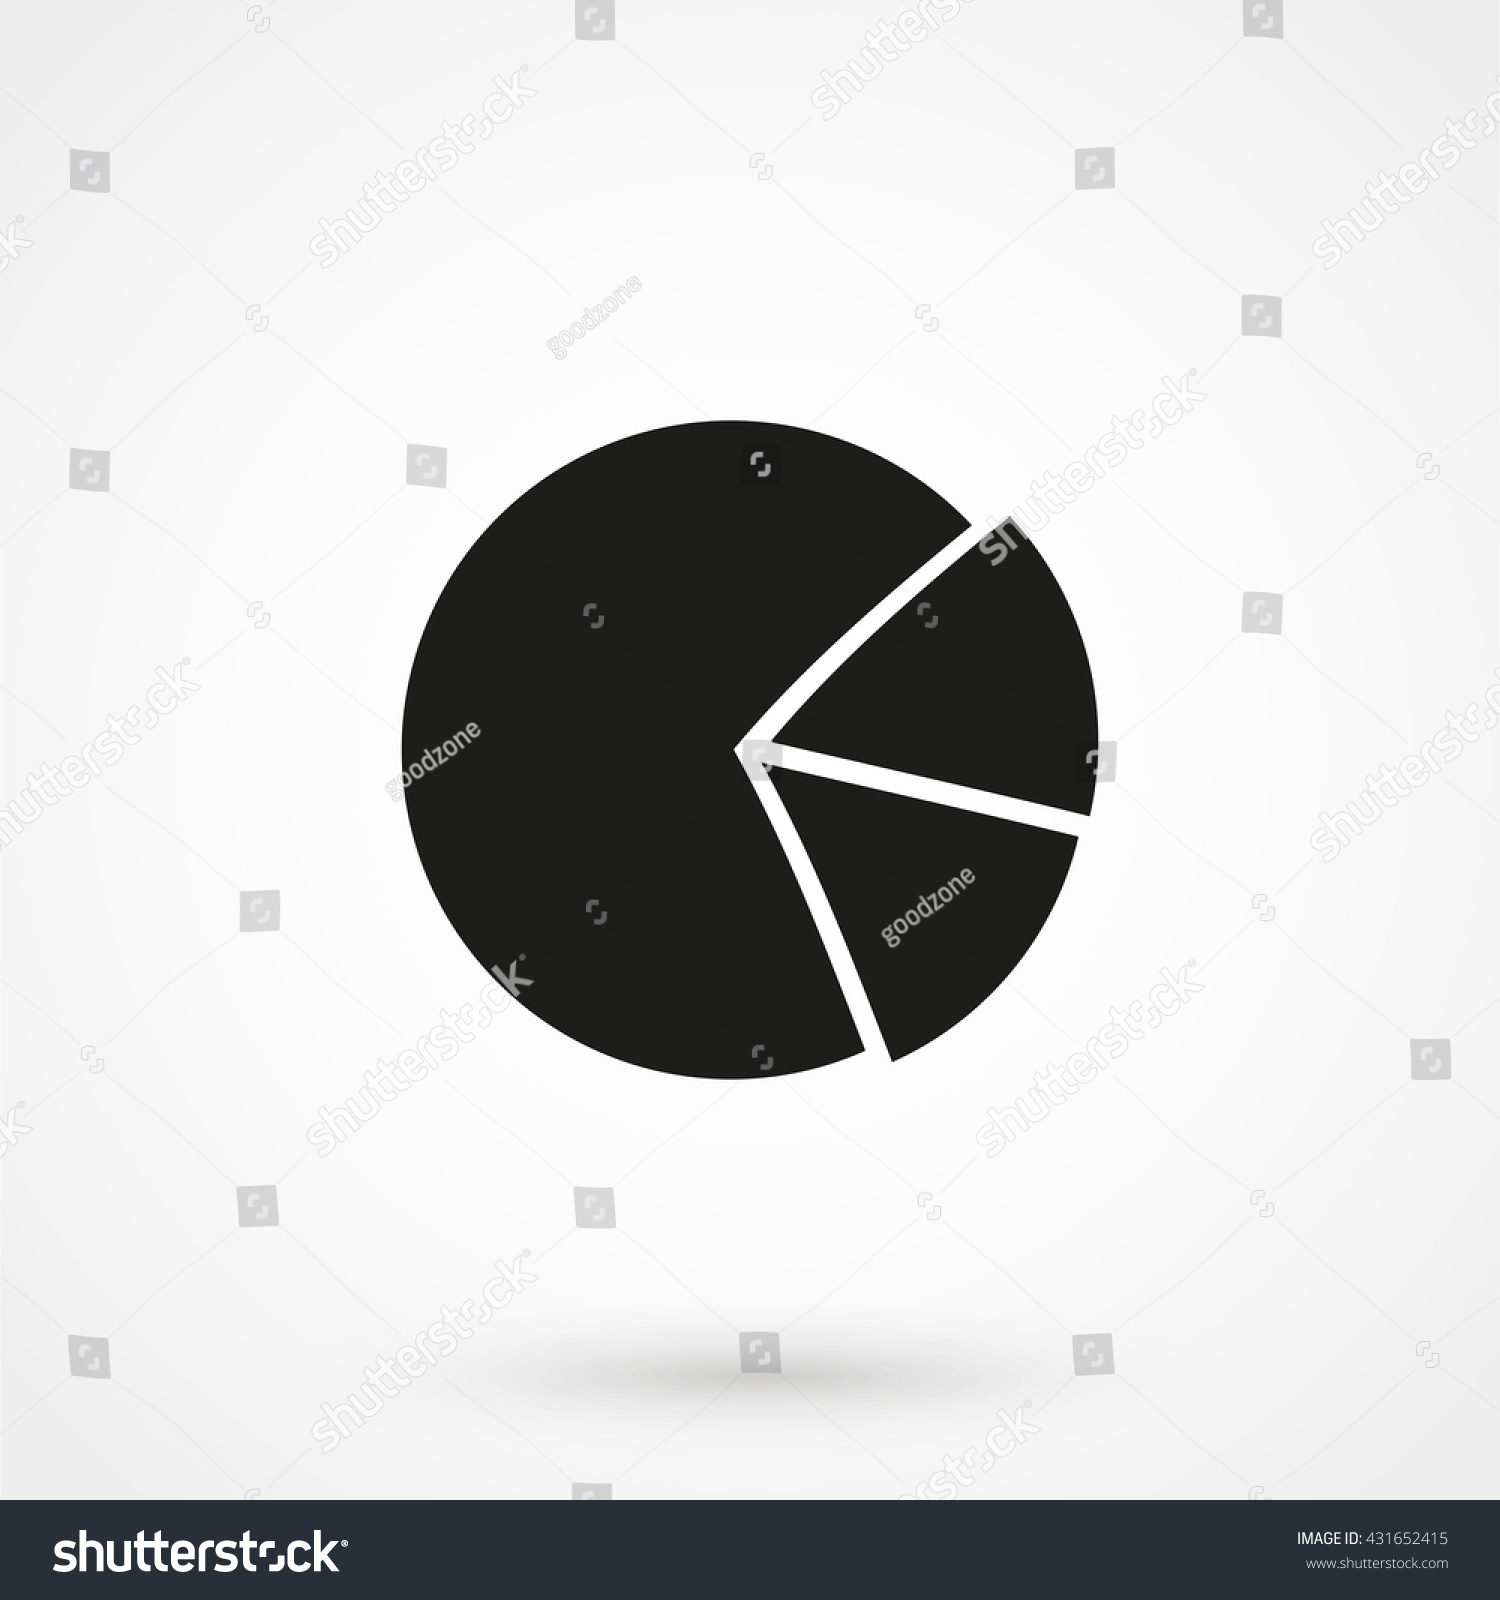 Pie chart icon isolated on background stock vector 431652415 pie chart icon isolated on background modern flat pictogram business marketing internet geenschuldenfo Gallery